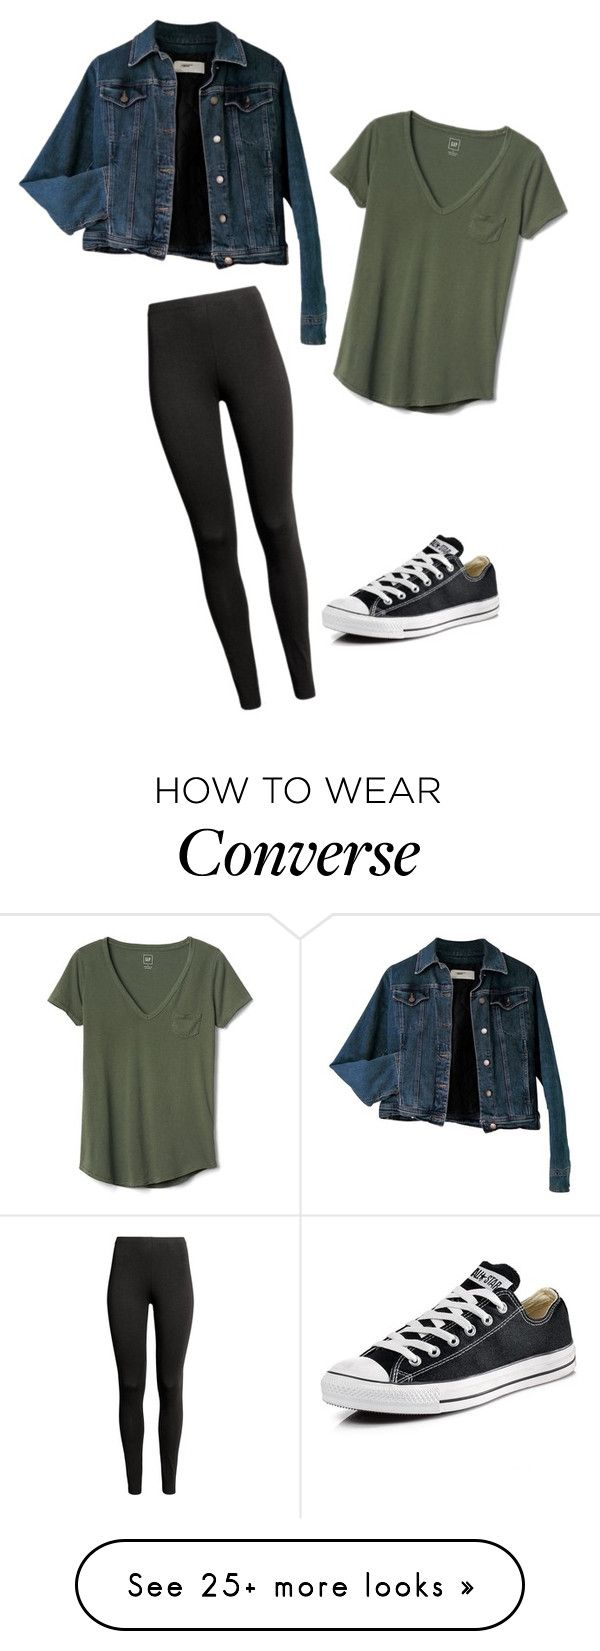 """""""Going to school when sick"""" by dancer0202 on Polyvore featuring Moschino, Converse and Gap"""